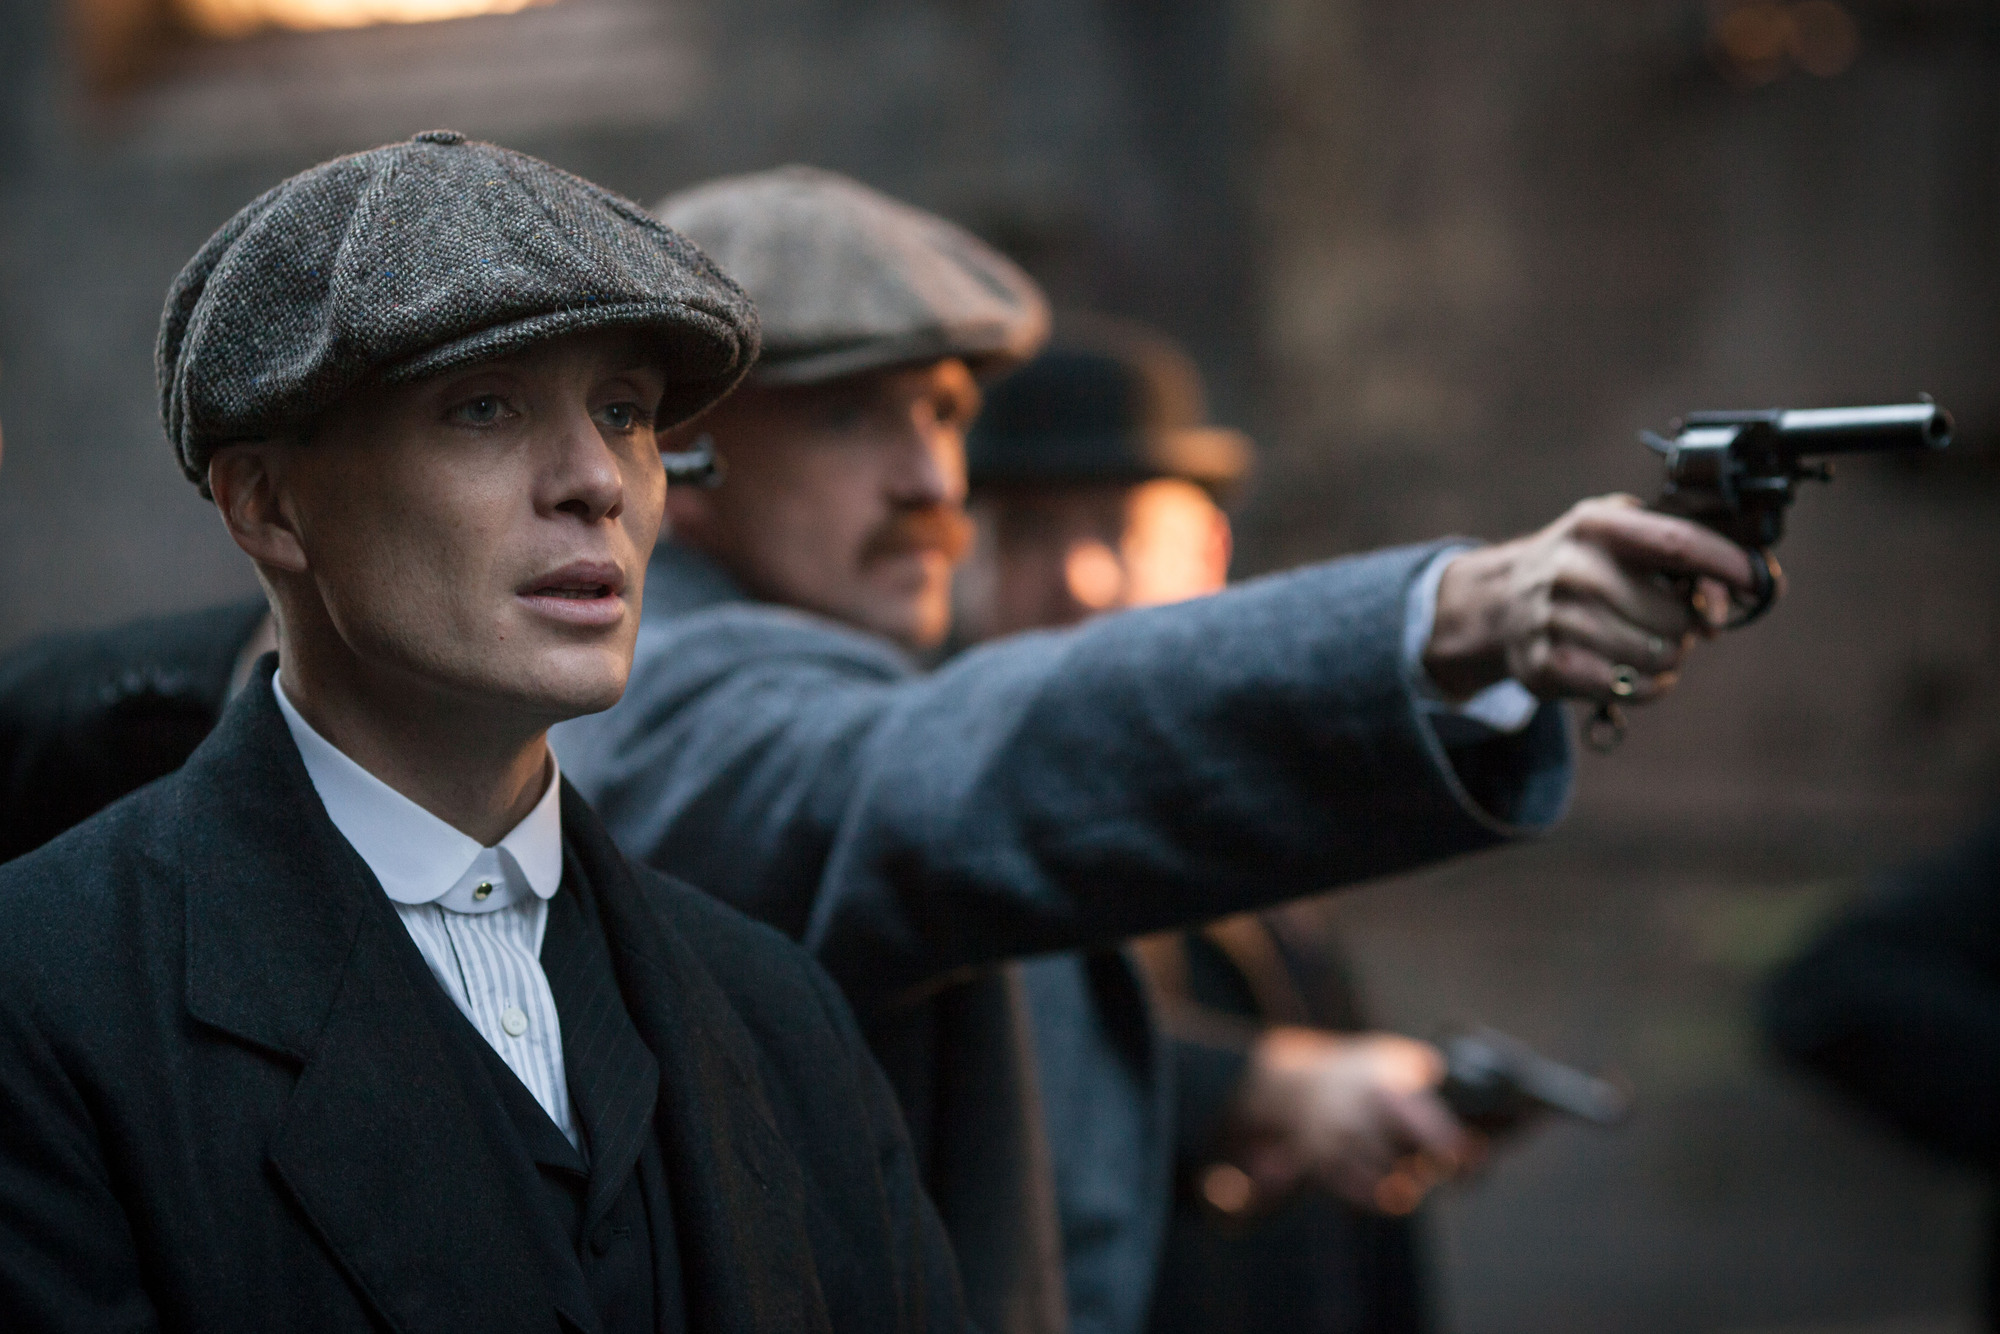 Peaky Blinders has sparked an 83% rise in sales of flat caps